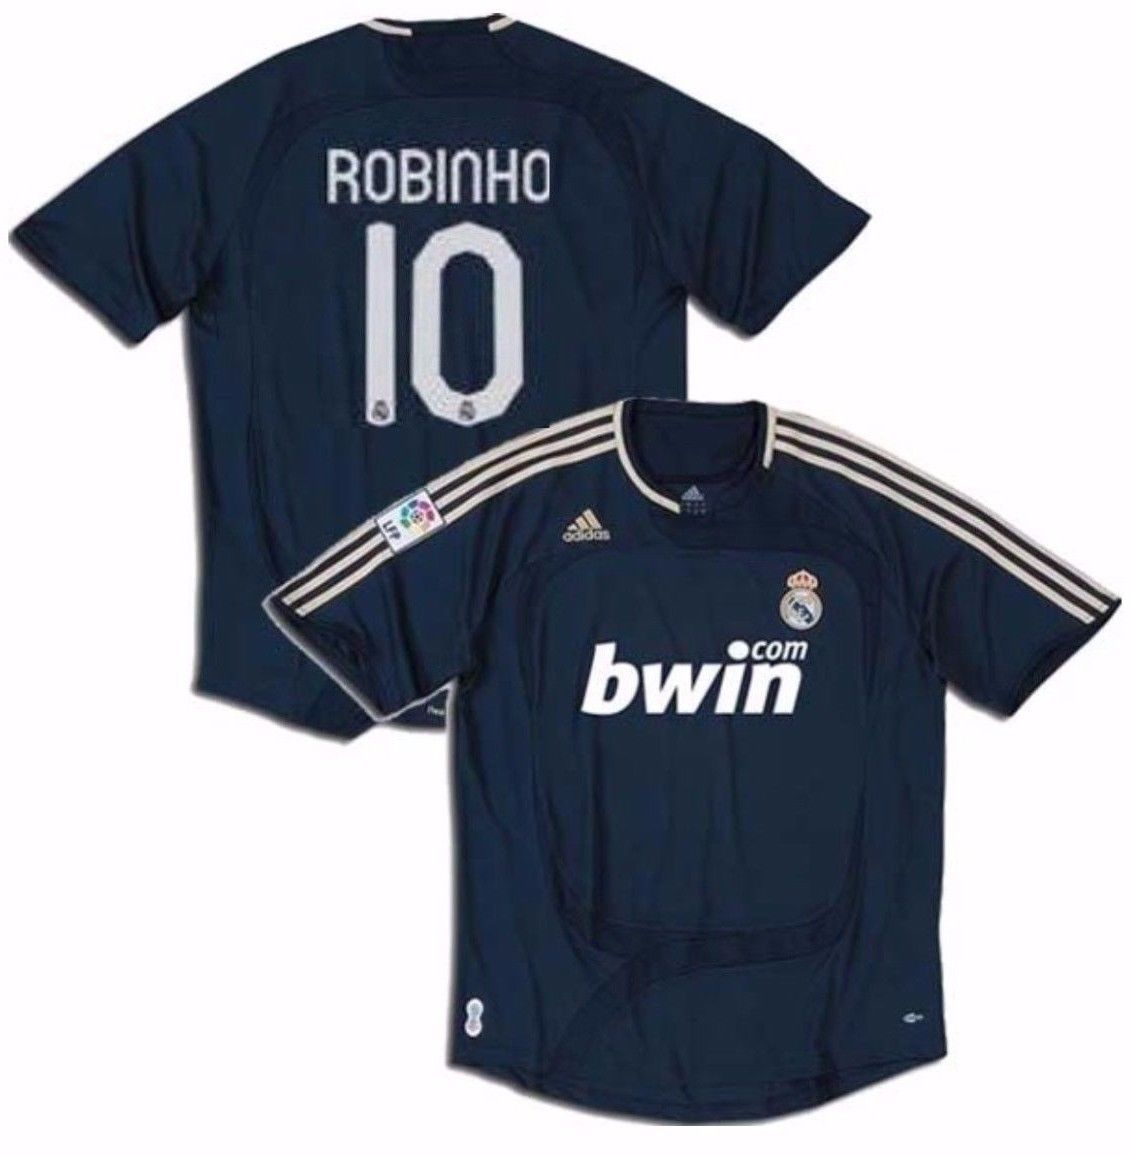 Adidas Robinho Real Madrid Away Jersey and similar items 1ee7e310fa97d